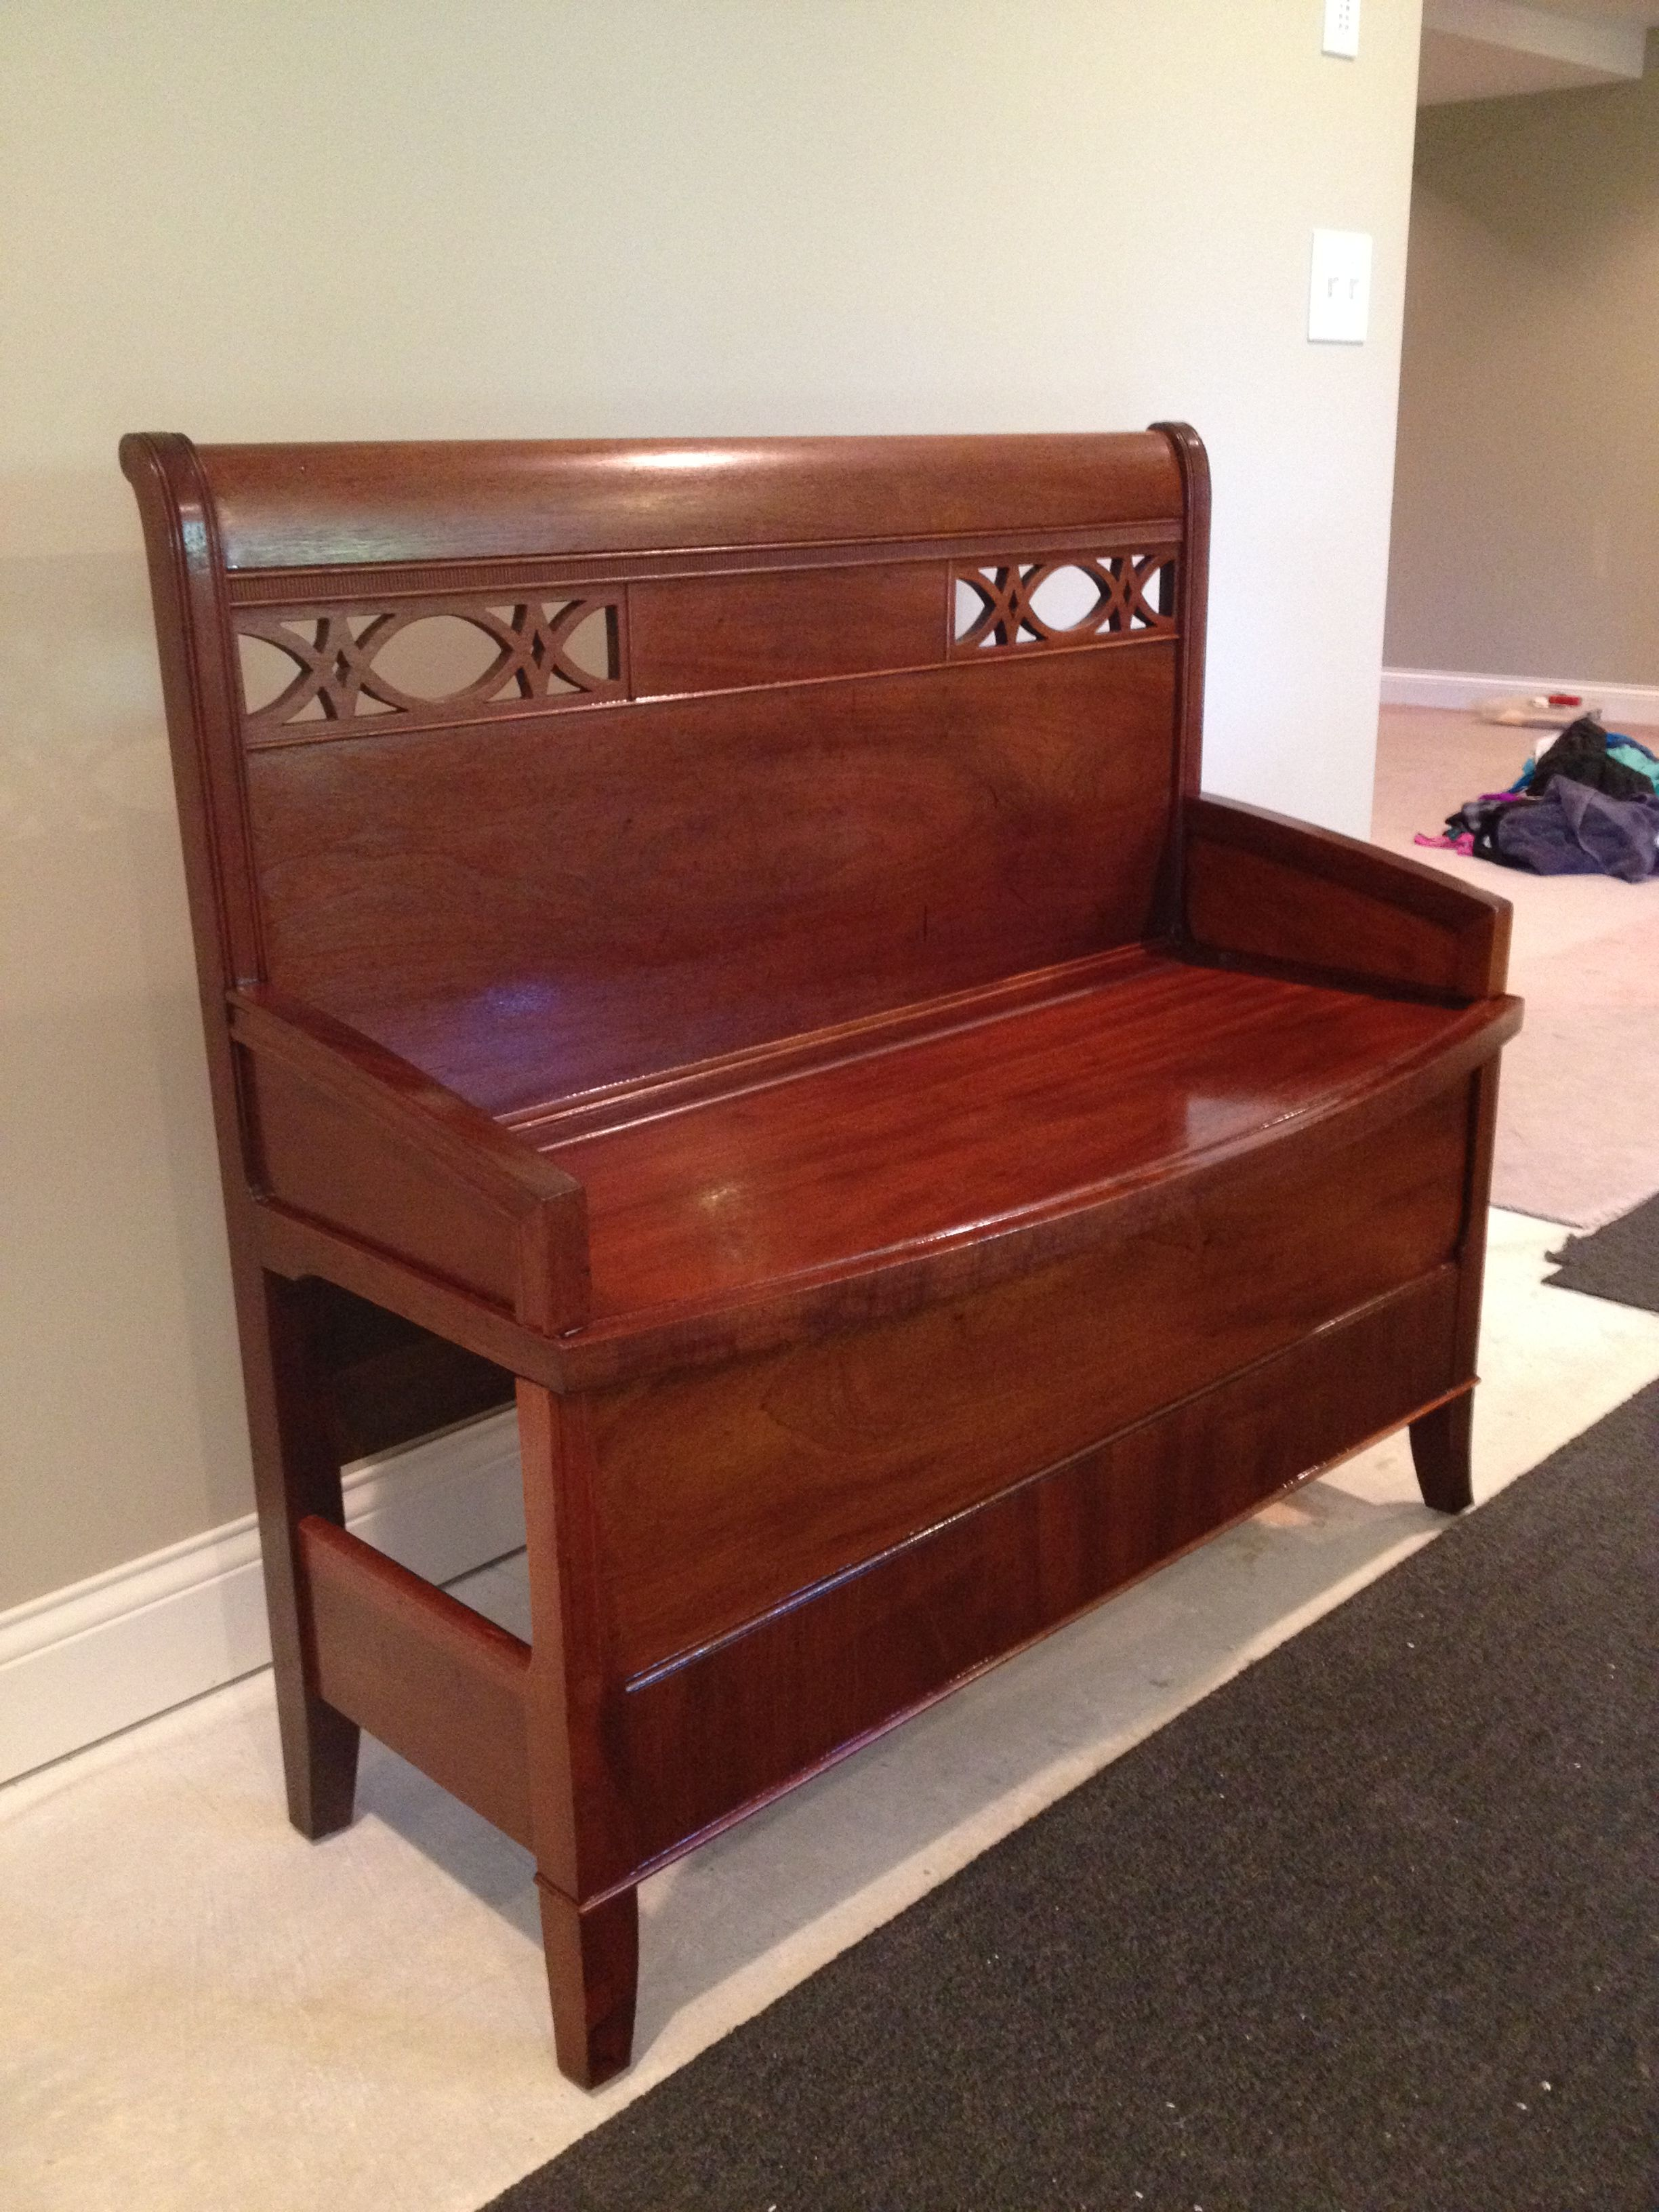 Bench made from twin bed frames, used headboard and